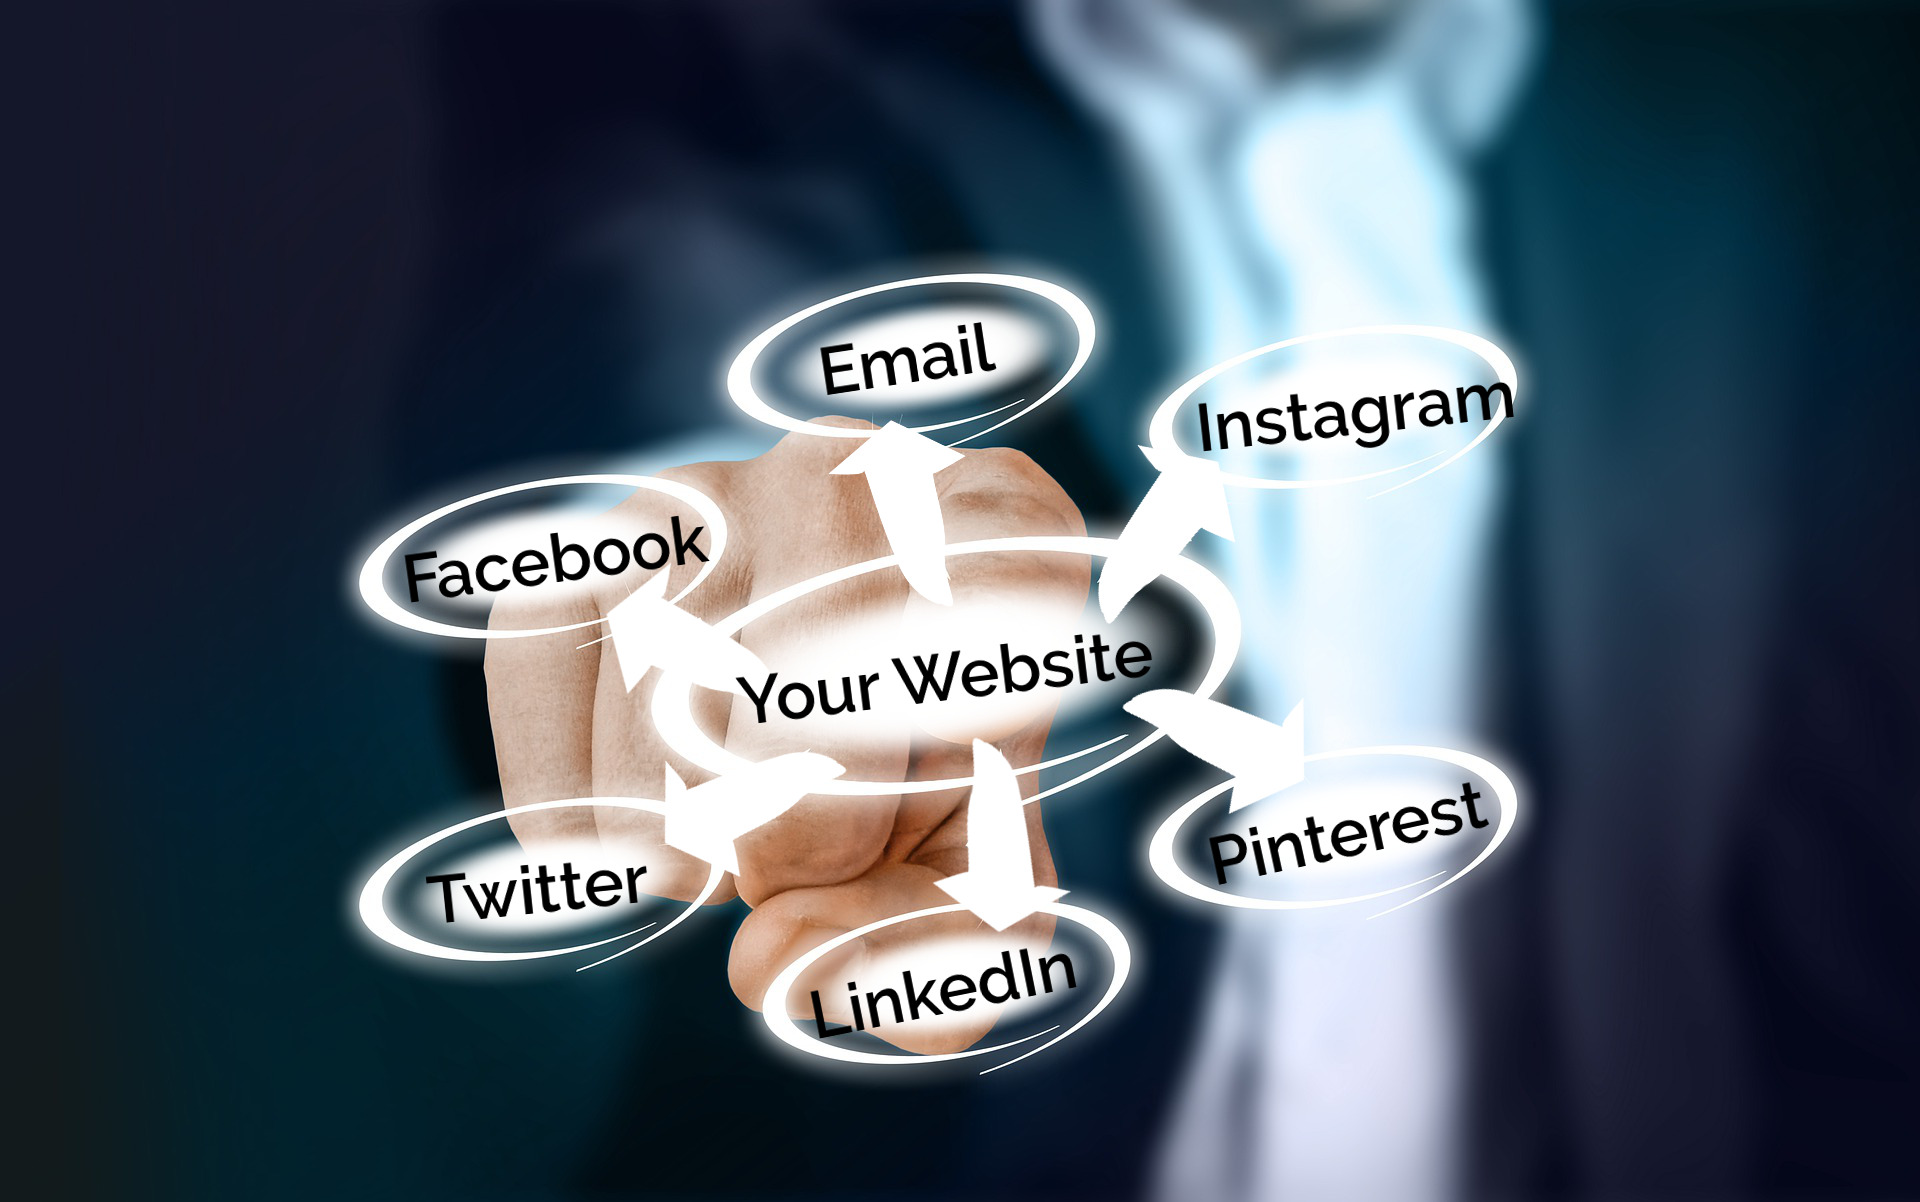 A background image, slightly blurred, of a person touching the screen, where there is a white oval and the text 'Your Website' with white arrows pointing to other white ovals for each of the following: Facebook, Email, Instagram, Pinterest, LinkedIn, and Twitter.